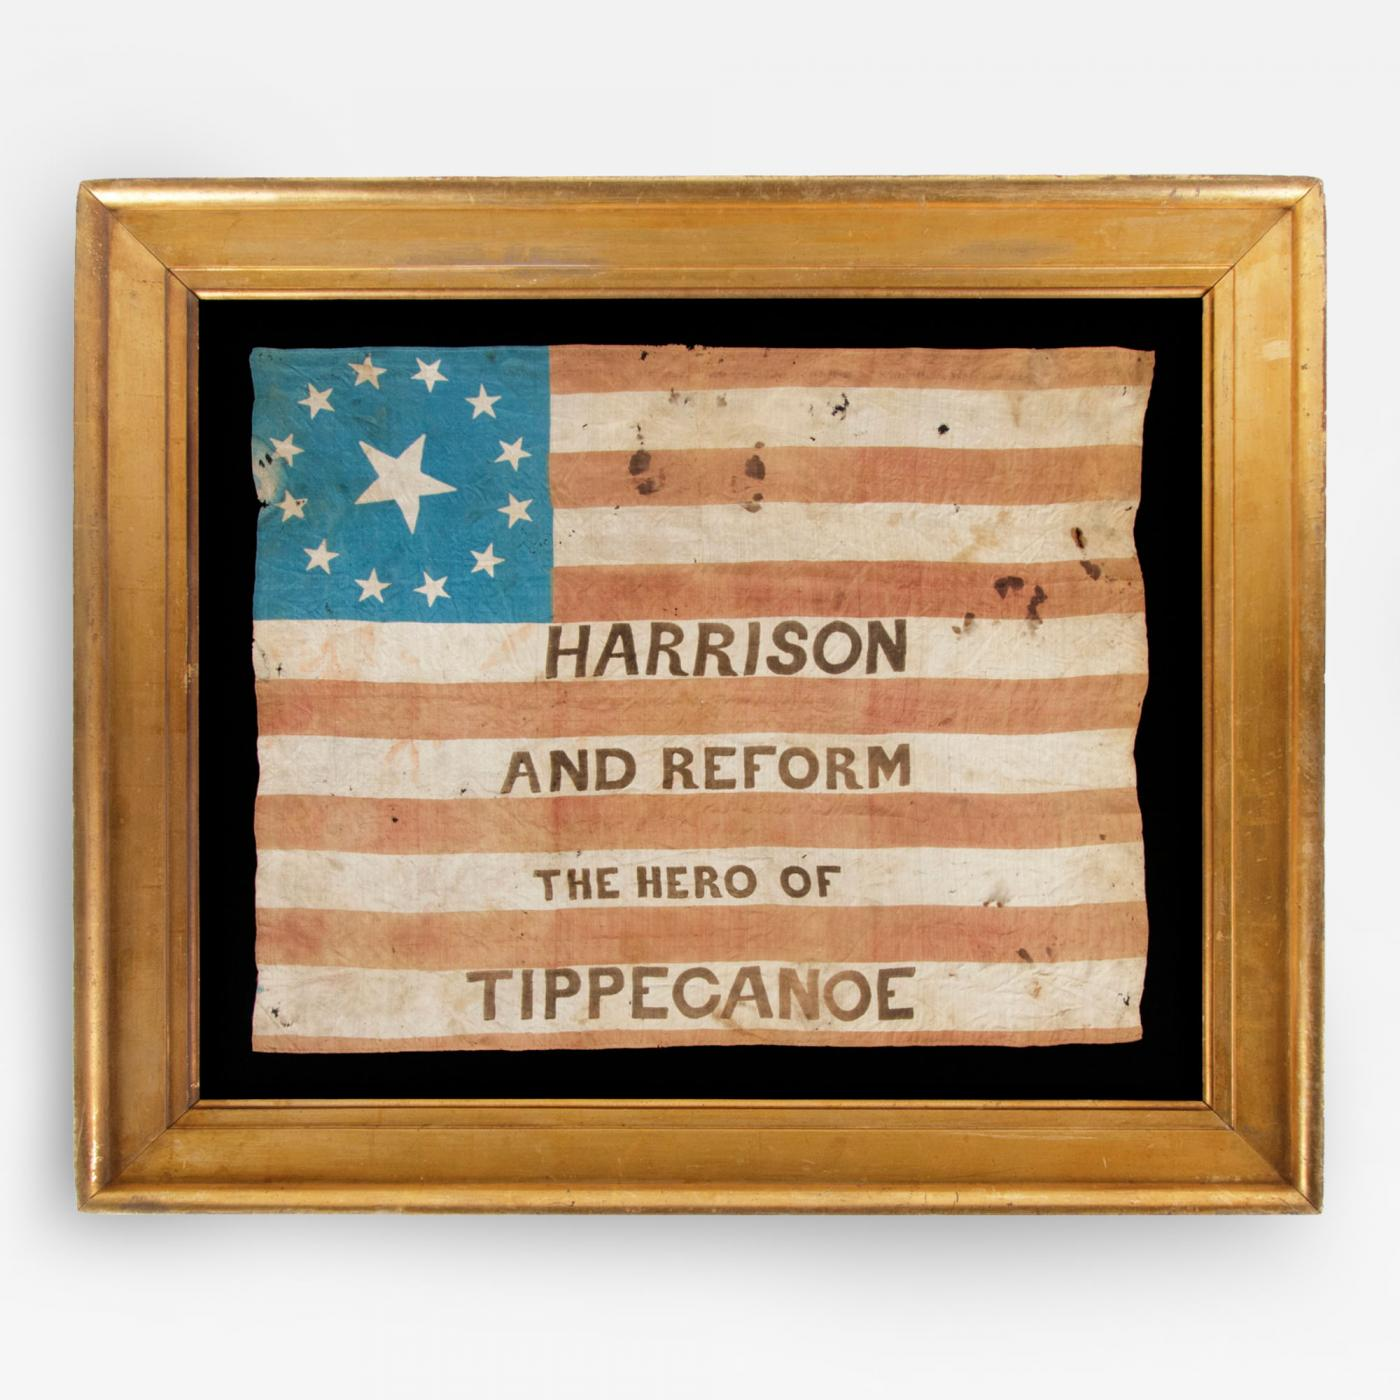 Dillsburg (PA) United States  city pictures gallery : Rare Example Parade Flag From The 1840 Presidential Campaign of W. H ...